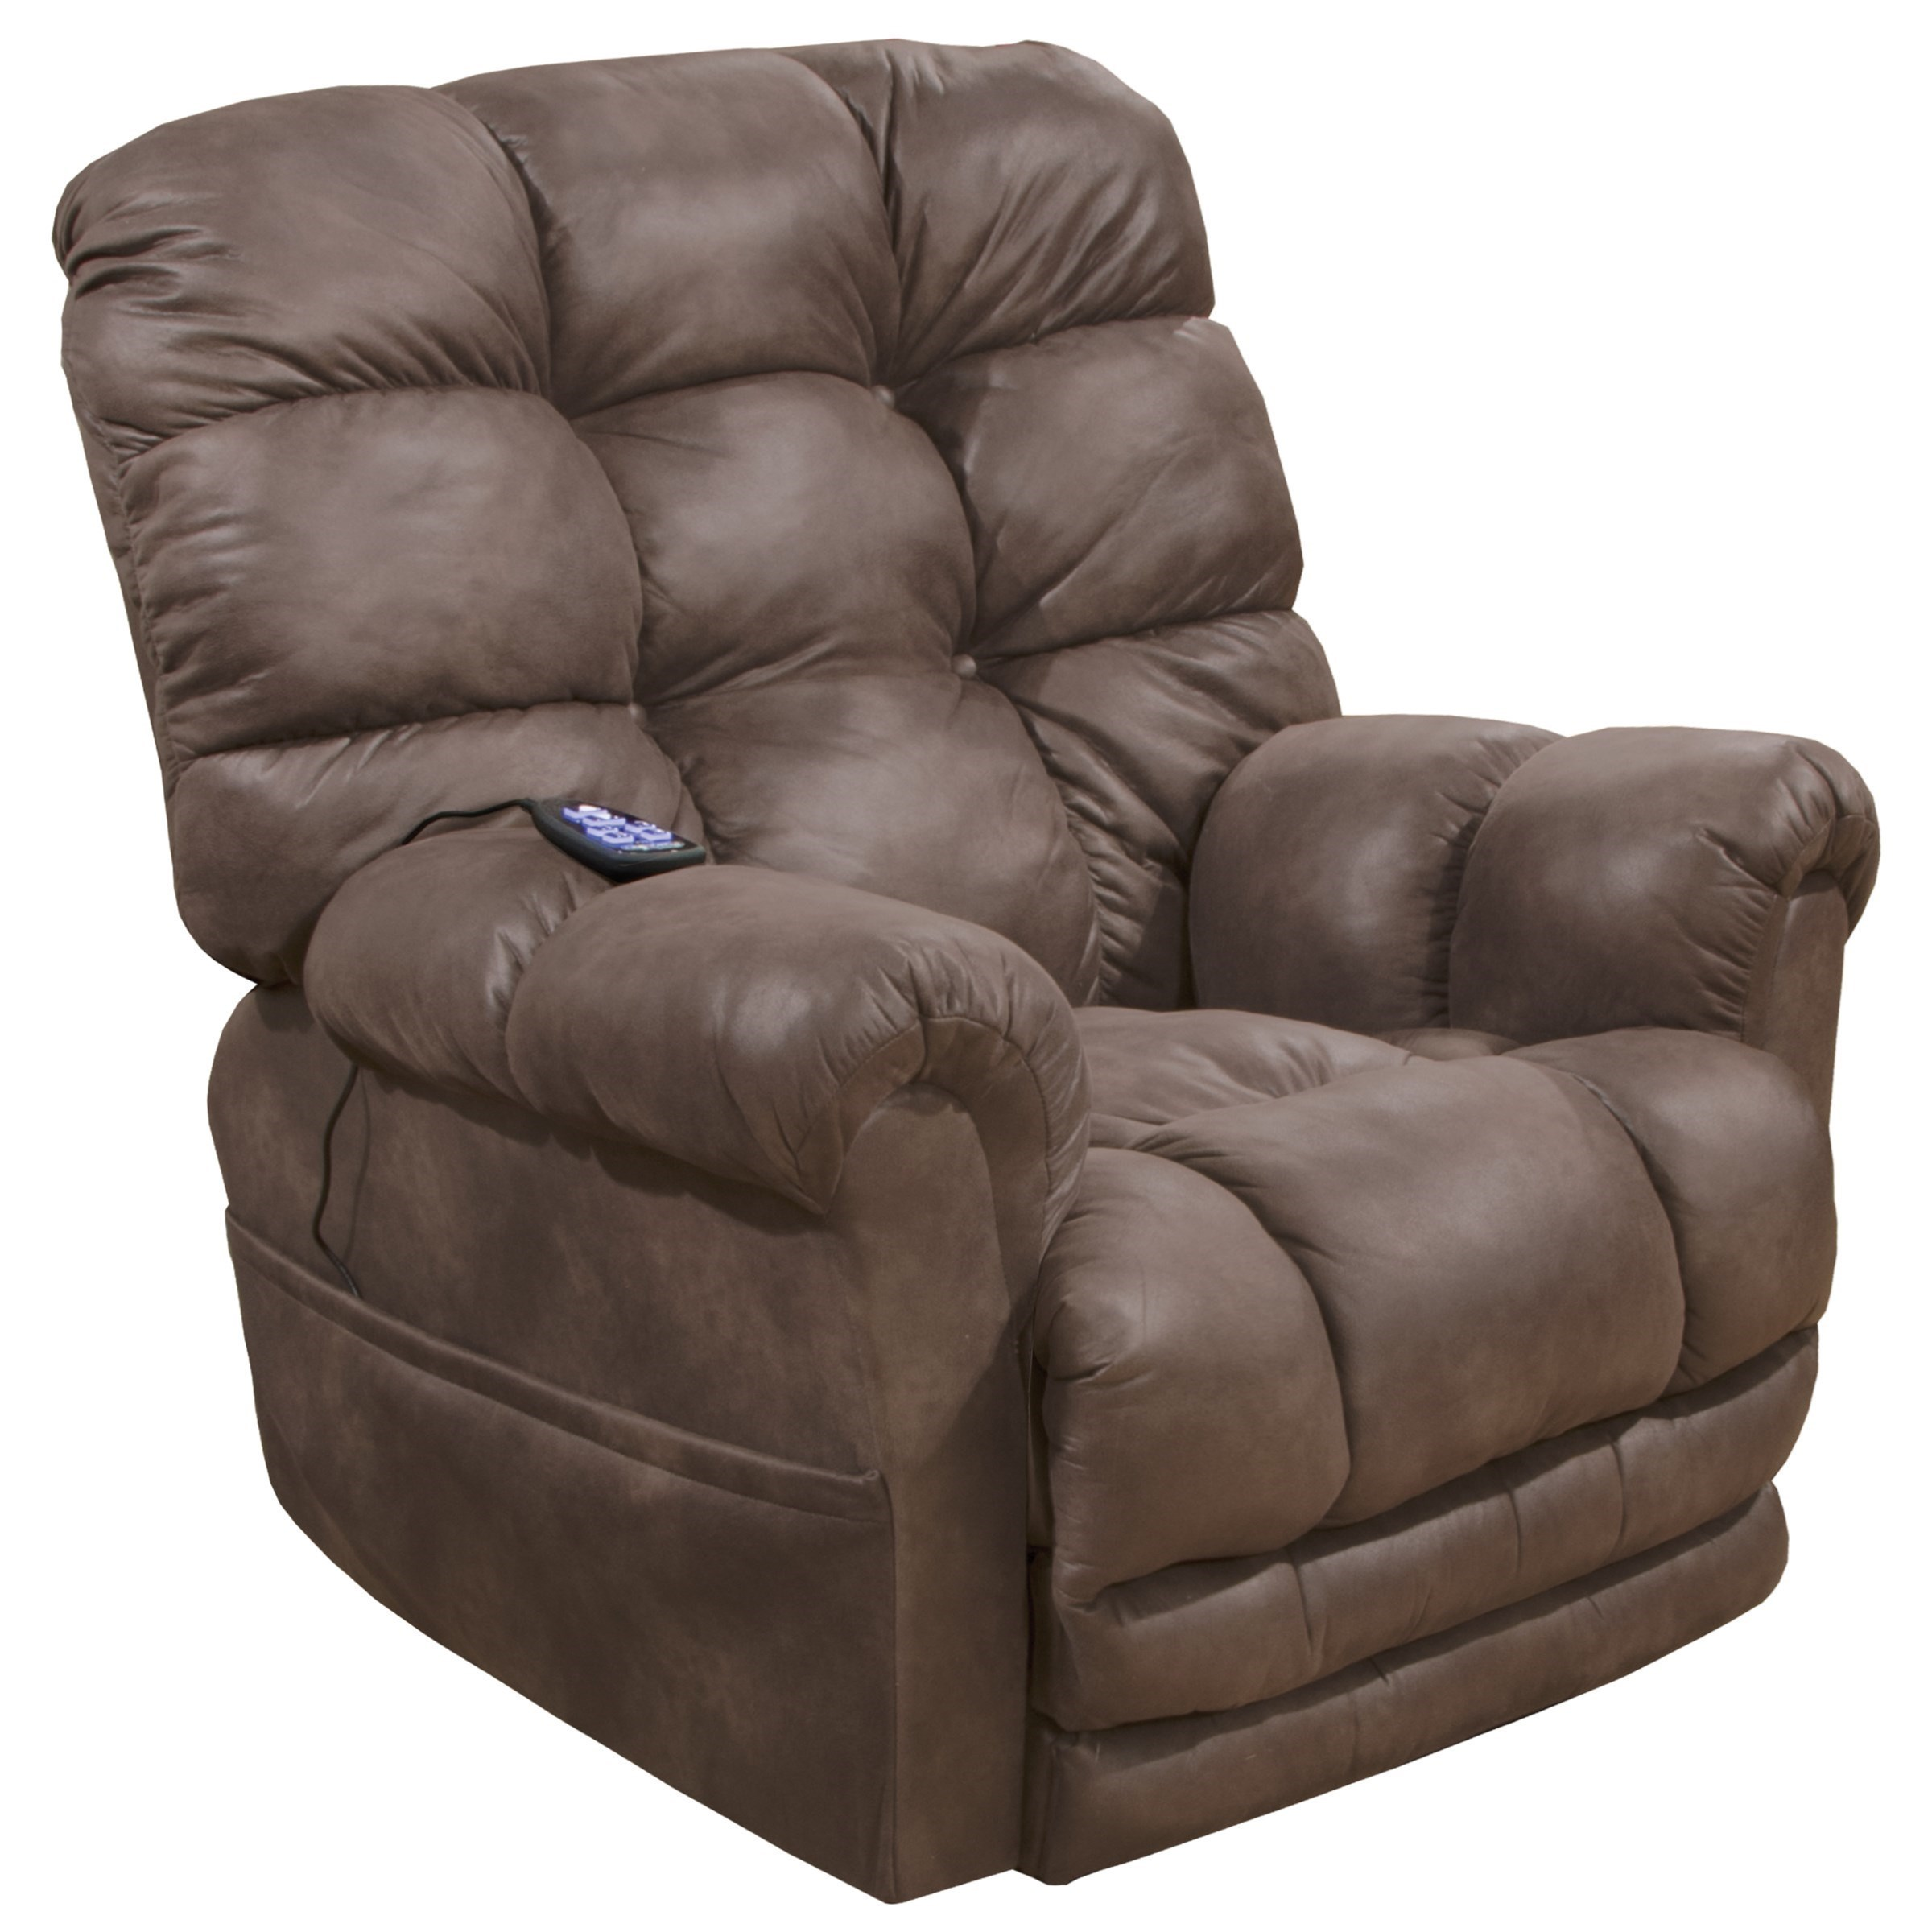 recliner vs chair with ottoman beach lounge chairs target catnapper oliver casual power lift extended